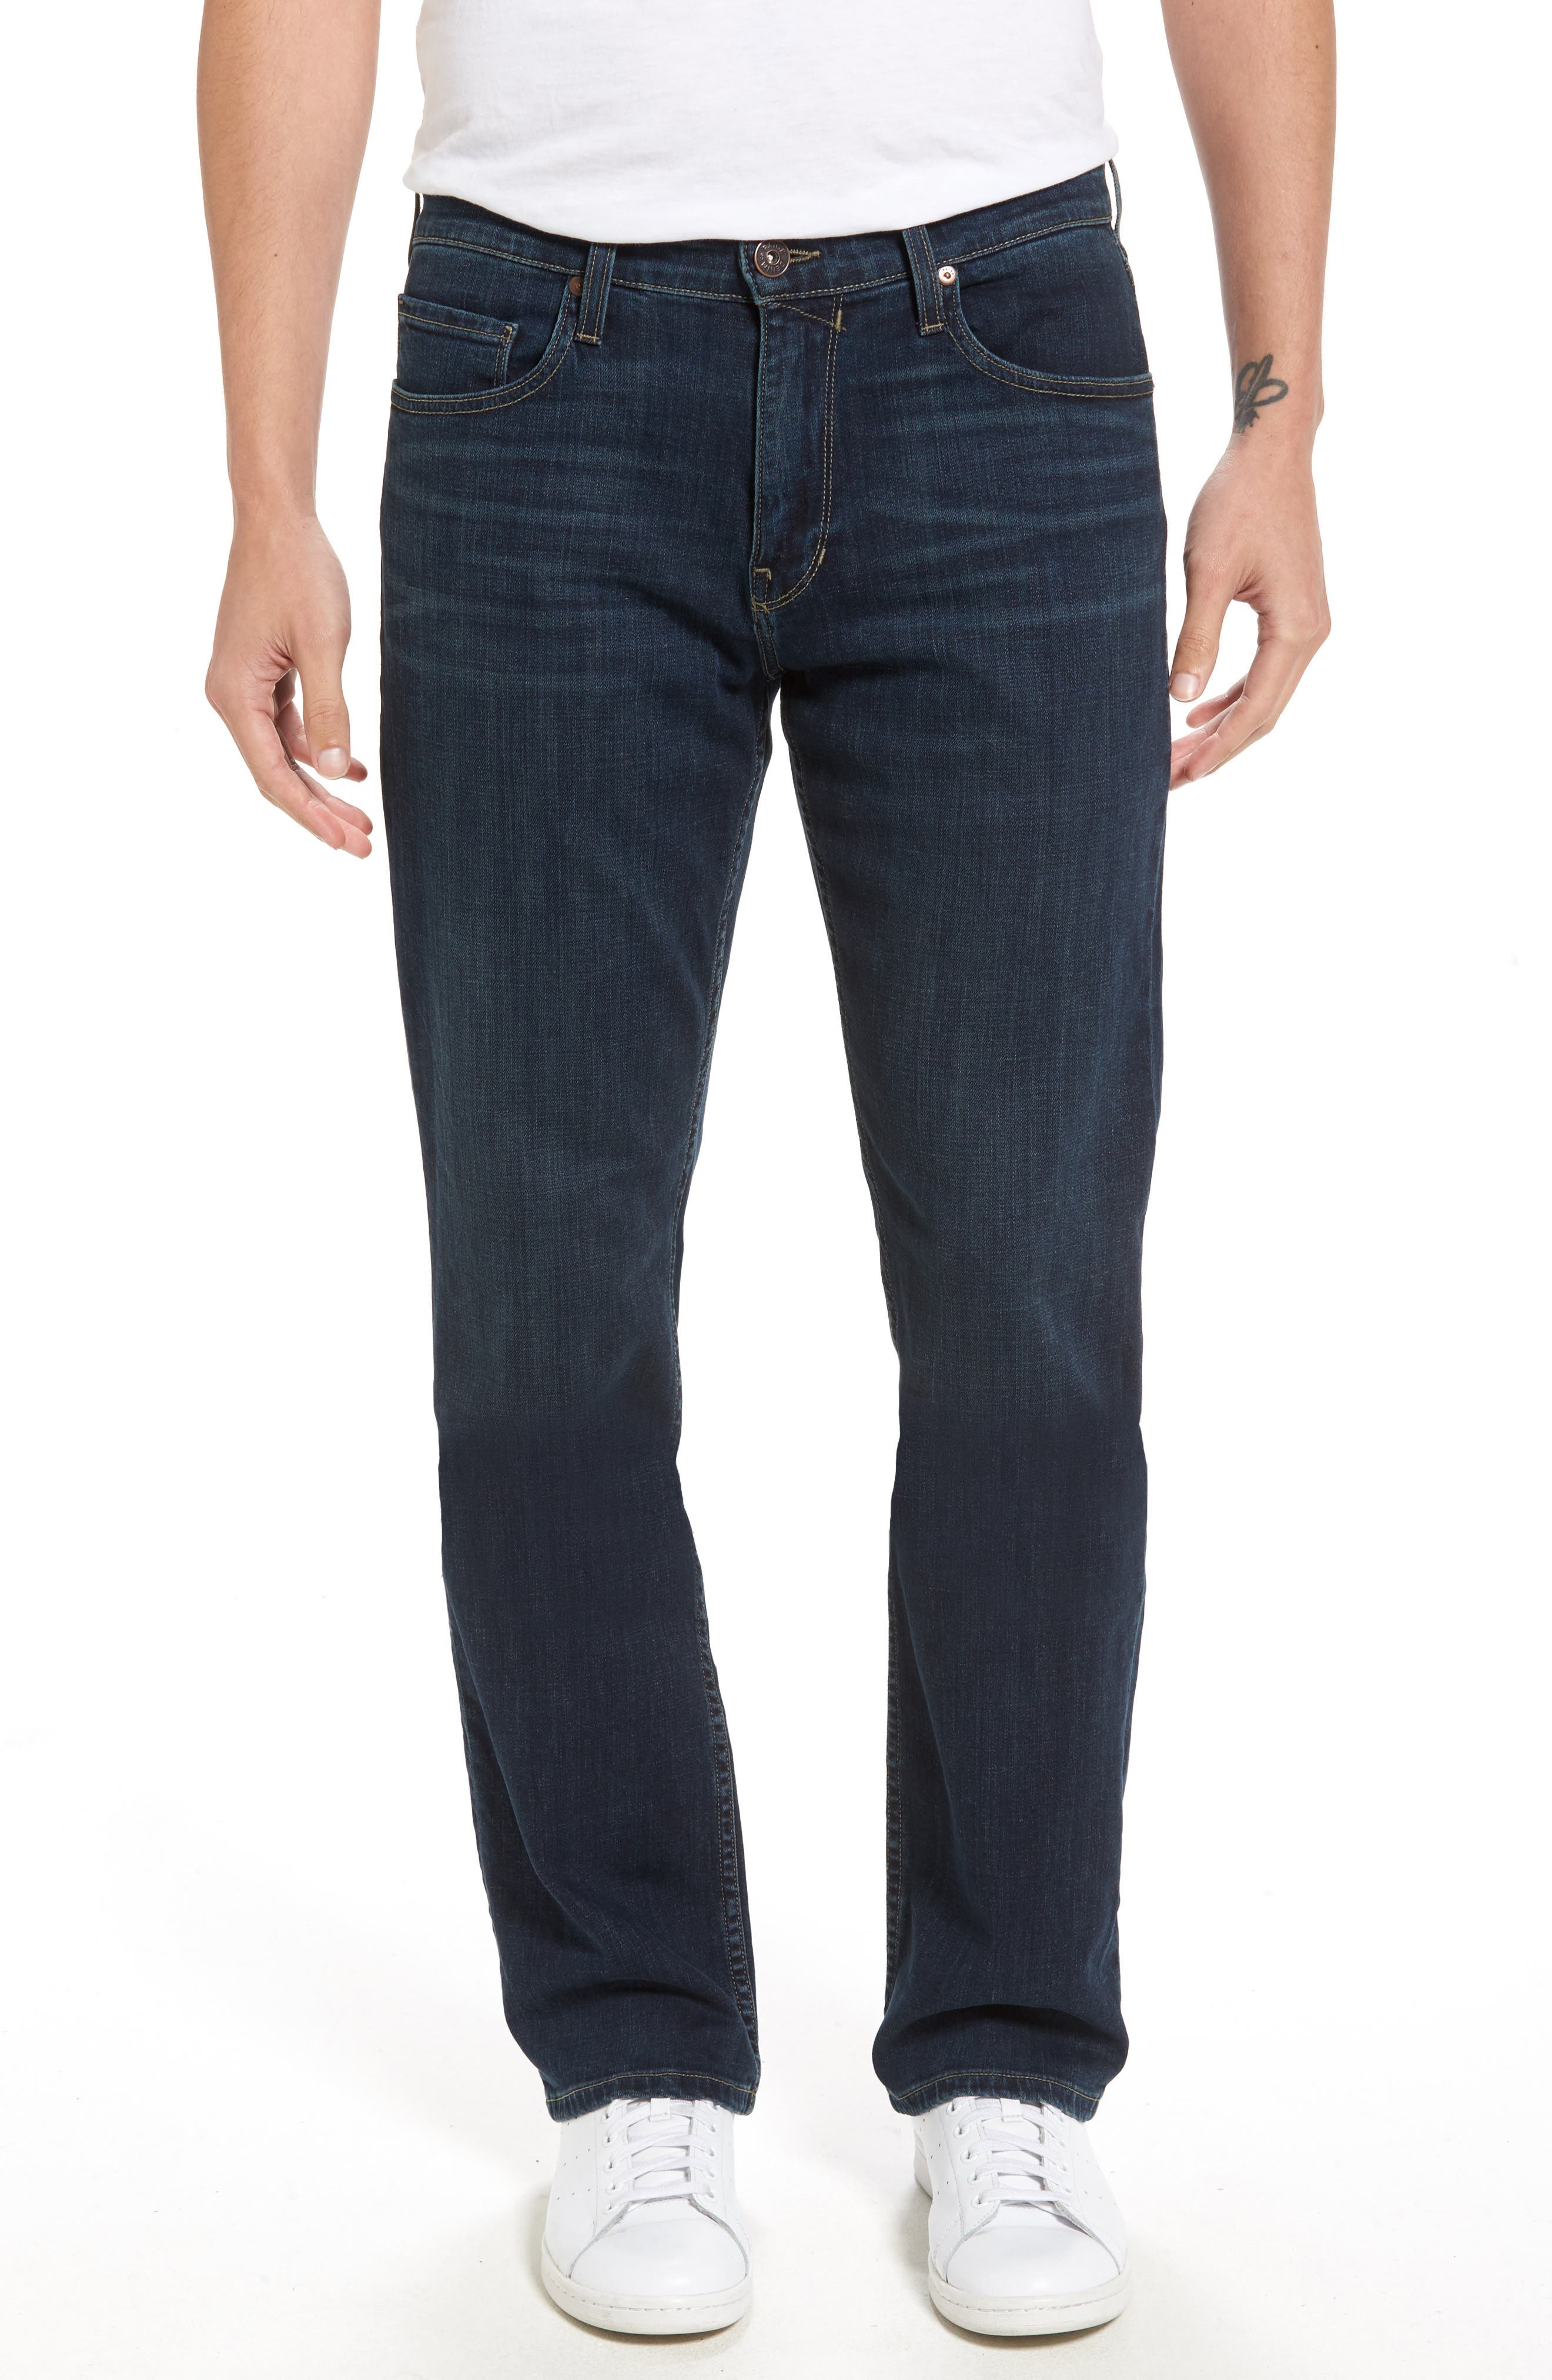 Doheny Relaxed Fit Jeans,                         Main,                         color, Knowle